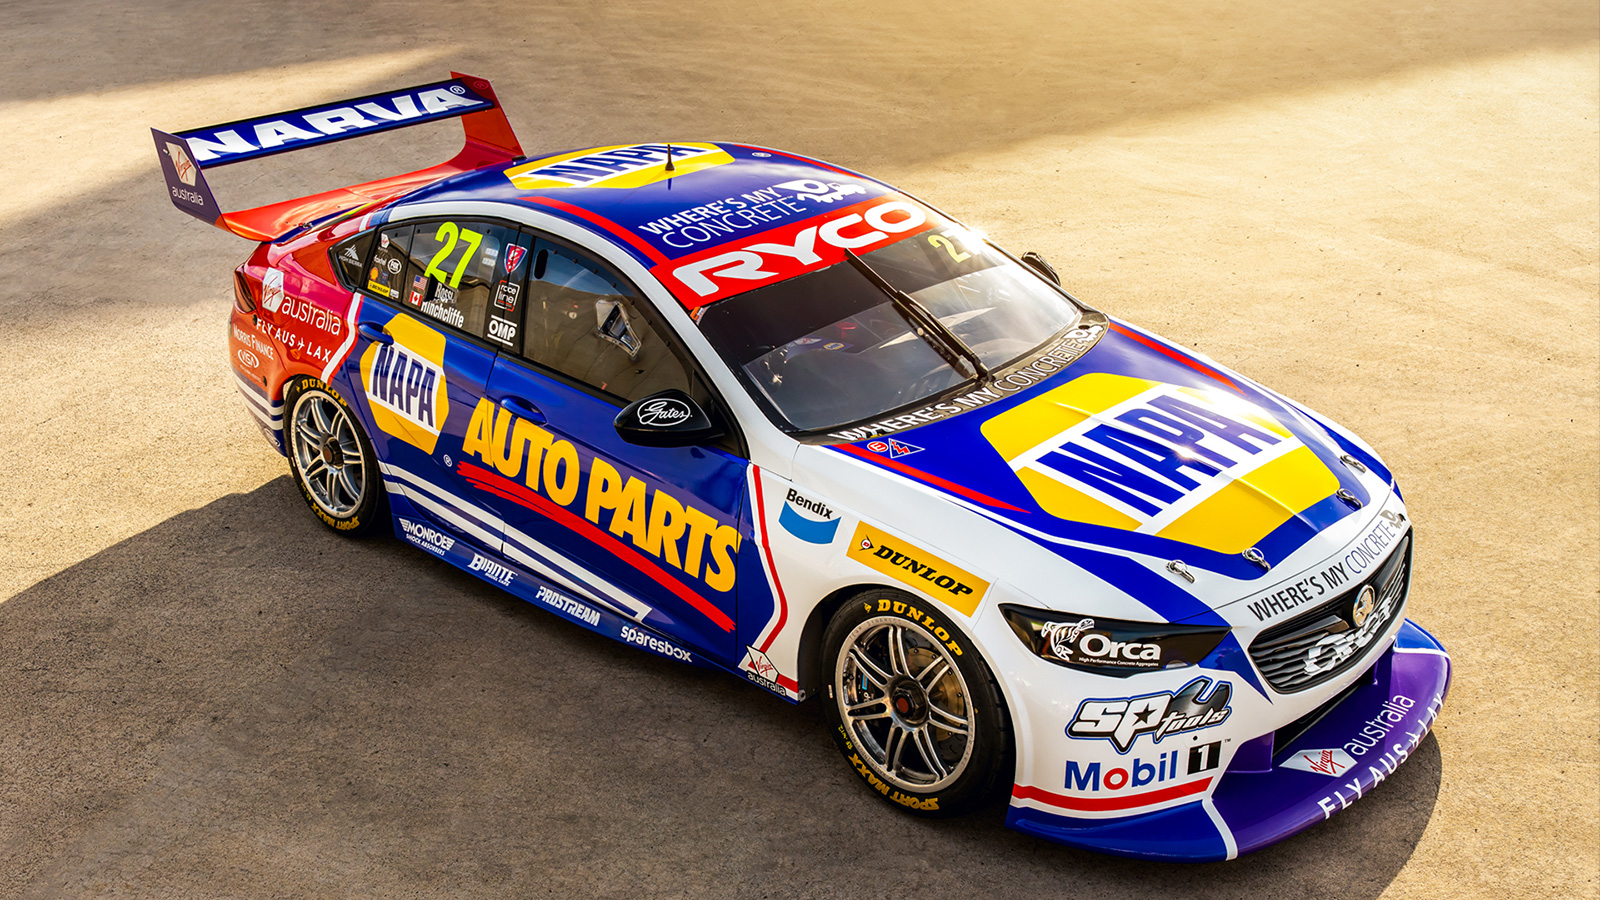 NAPA Auto Parts Racing Livery Revealed